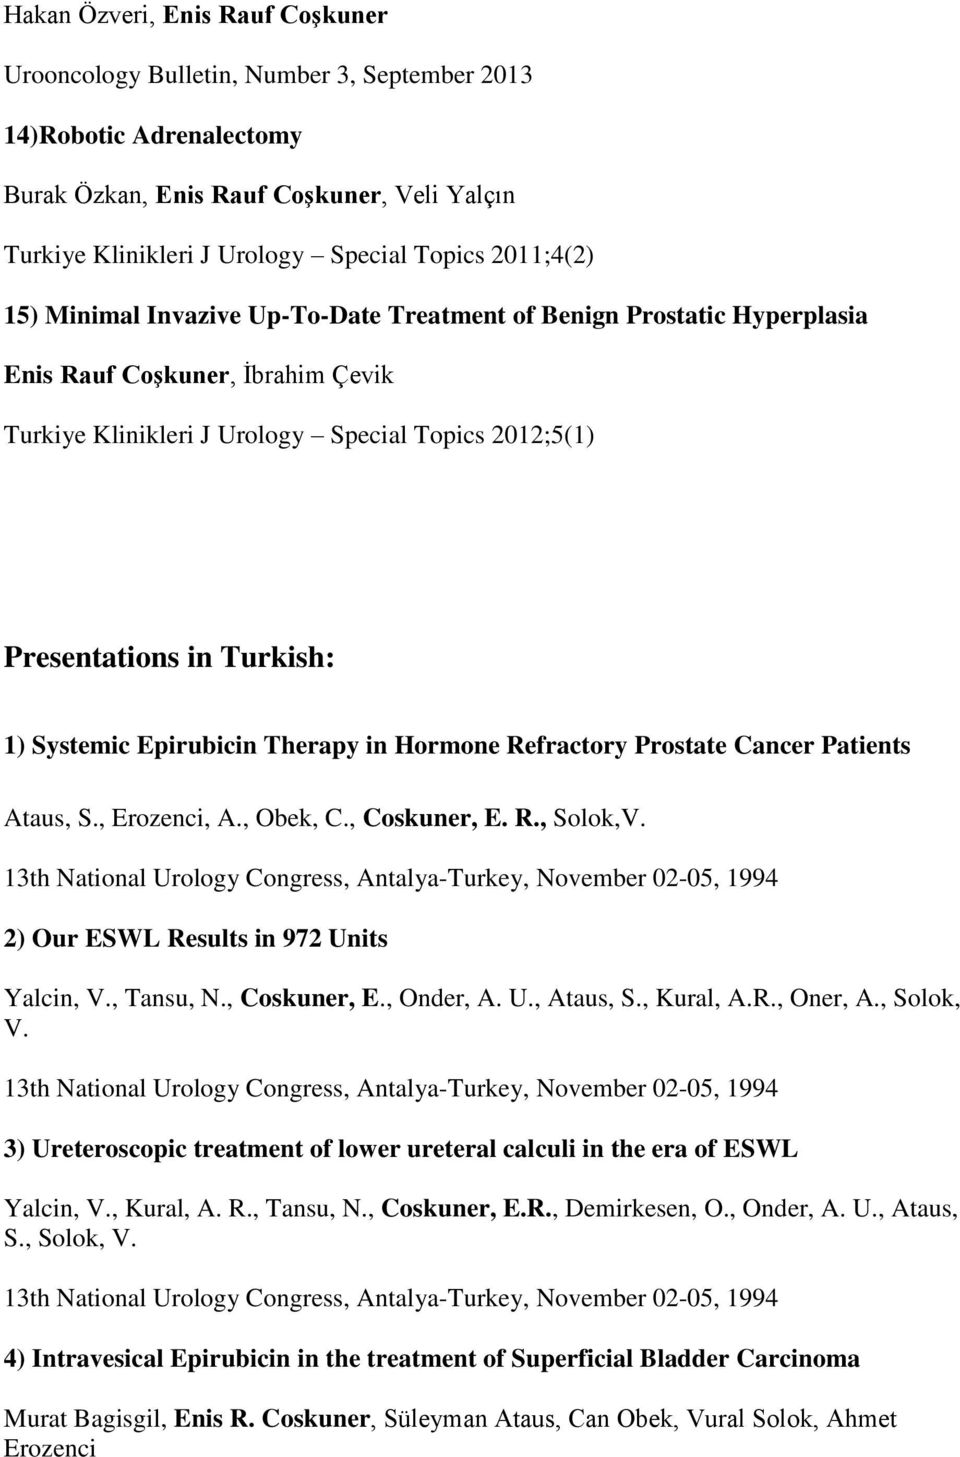 1) Systemic Epirubicin Therapy in Hormone Refractory Prostate Cancer Patients Ataus, S., Erozenci, A., Obek, C., Coskuner, E. R., Solok,V.